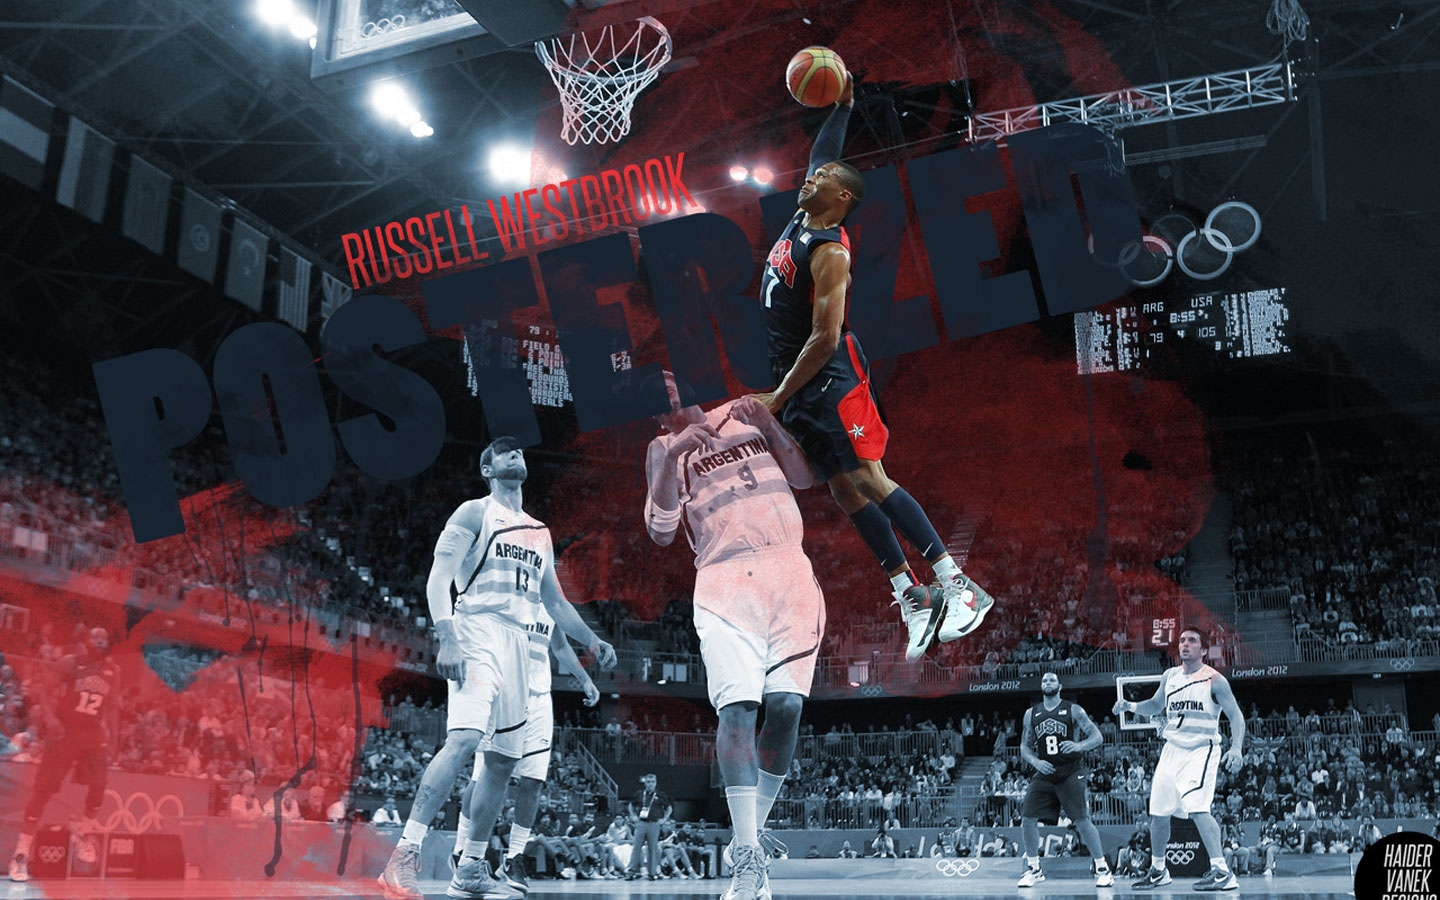 Russell Westbrook Dunk Wallpaper 19